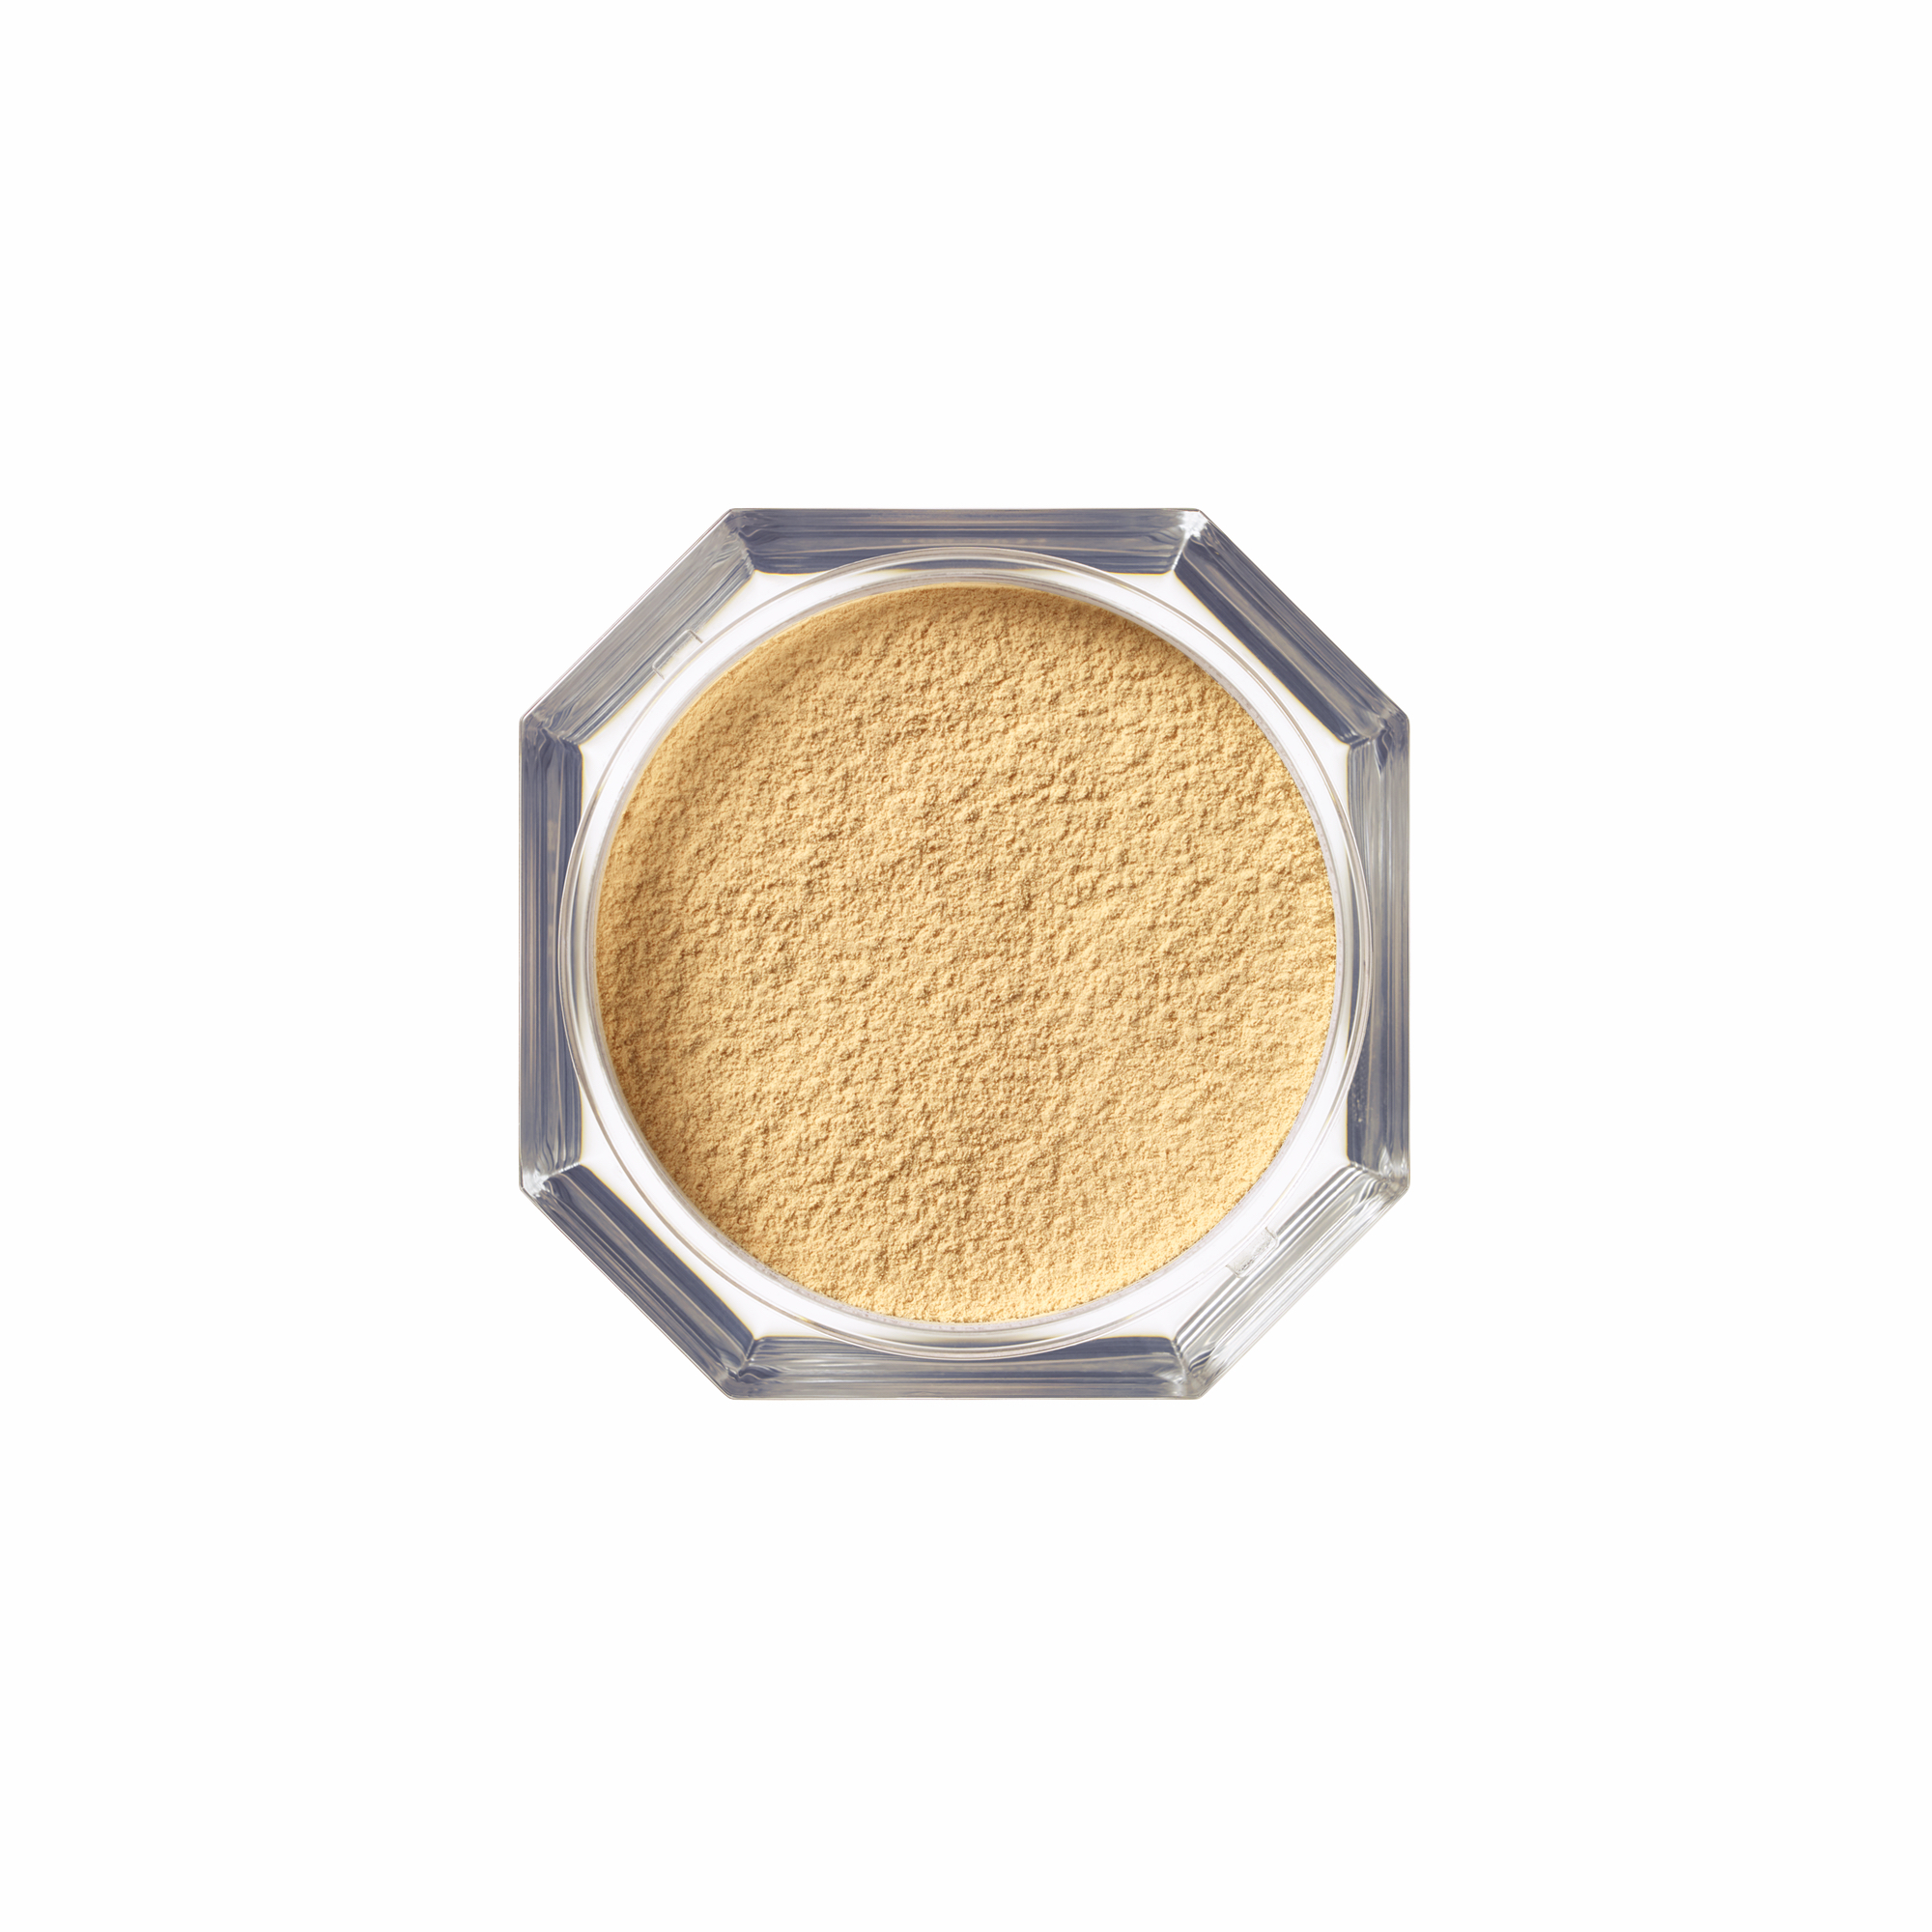 FB Pro Filt'r Instant Retouch Setting Powder - Banana - AED 158